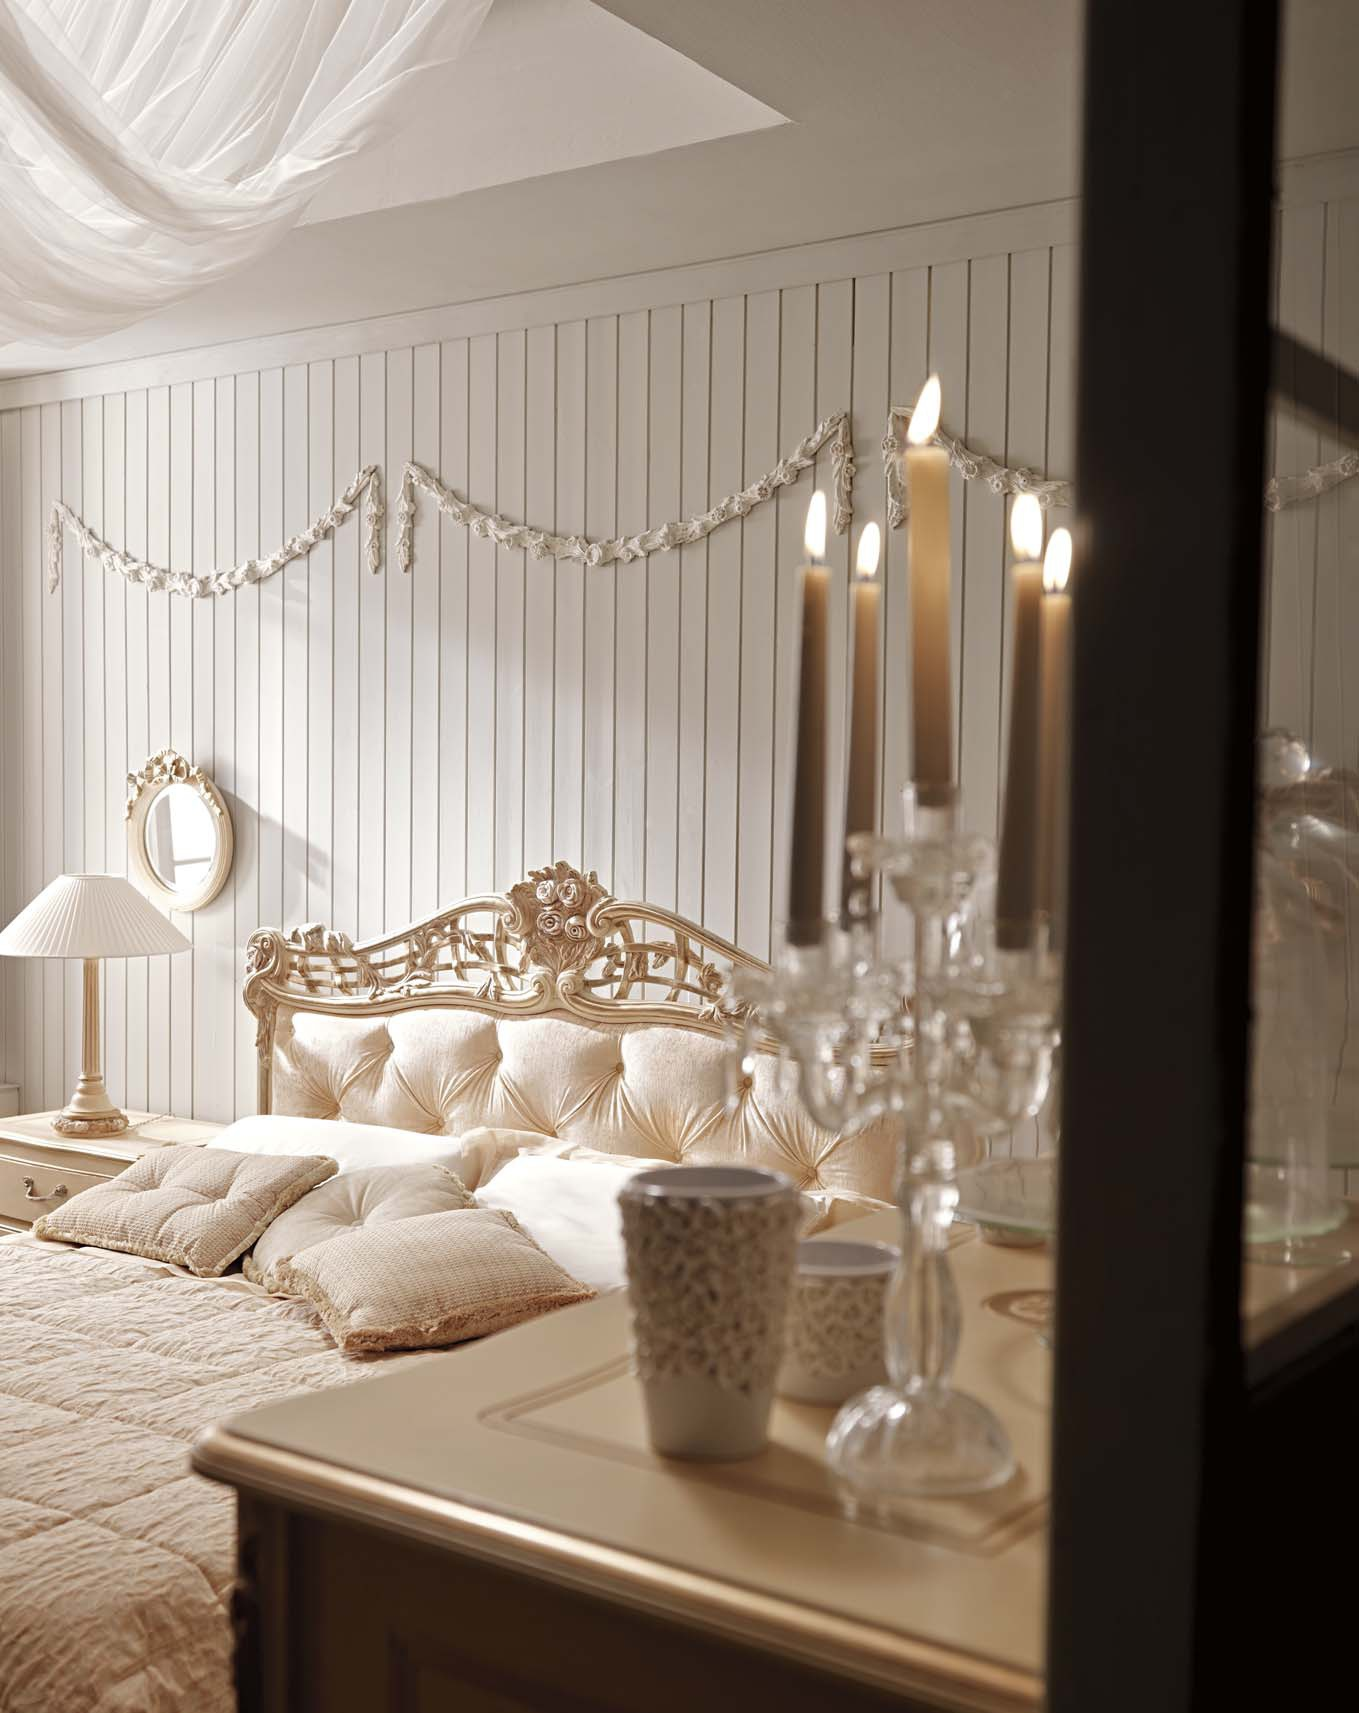 Double Bed With Gilt Carving Handmade Ambiente Notte